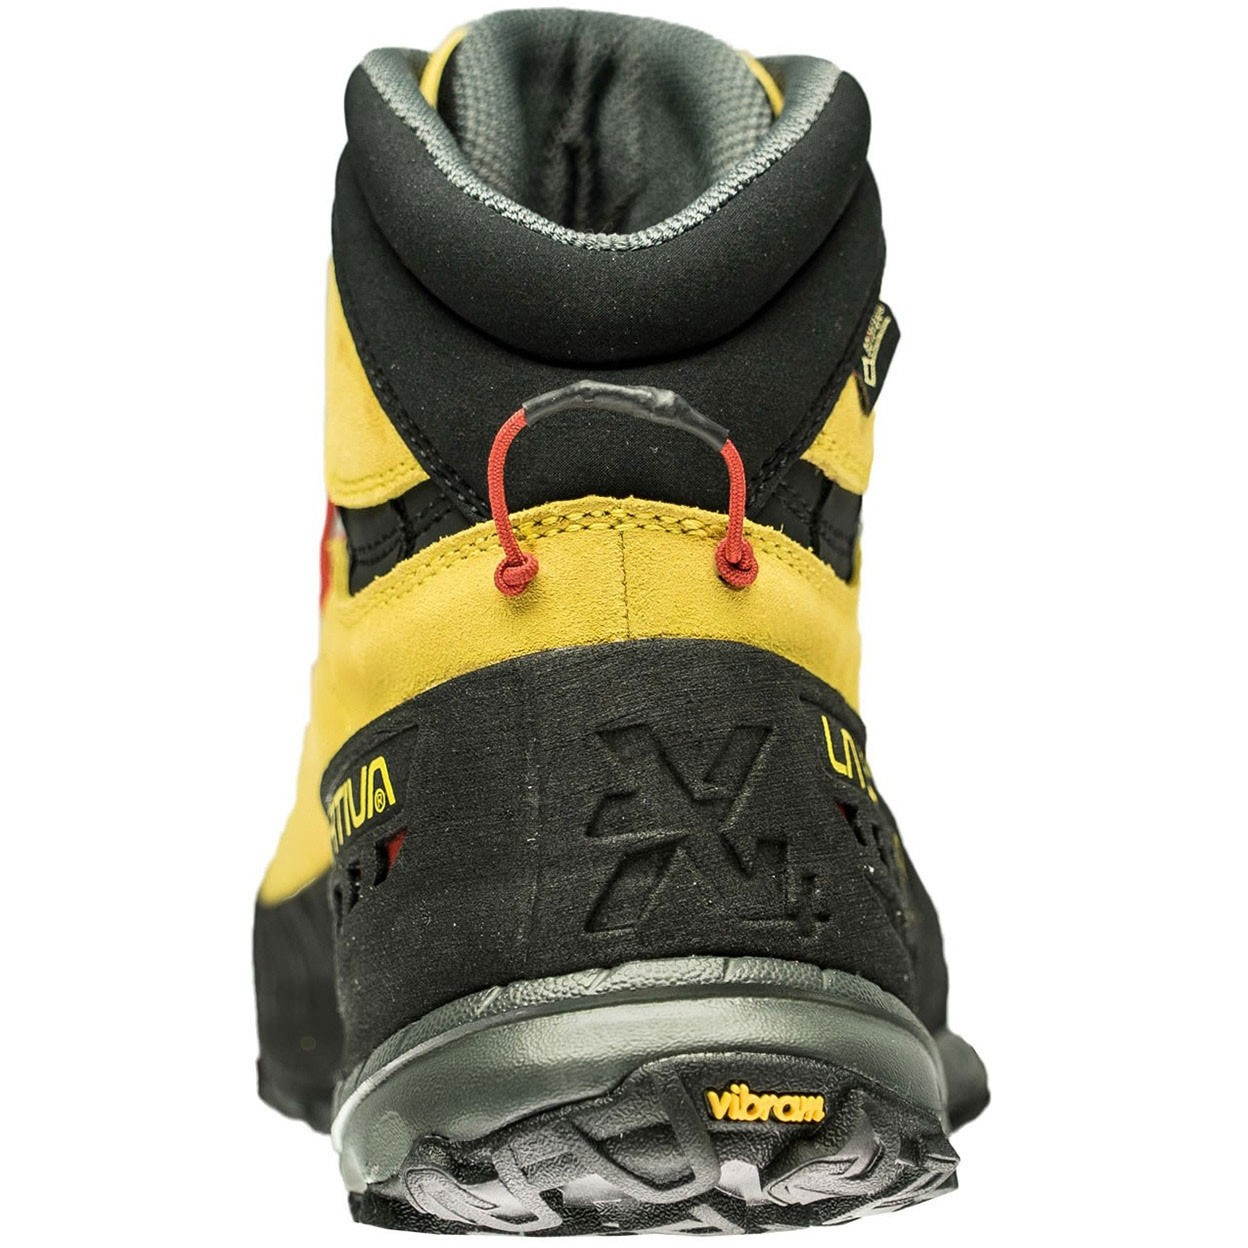 La Sportiva TX4 Mid GTX Approach Shoe - Men's - Black/Yellow